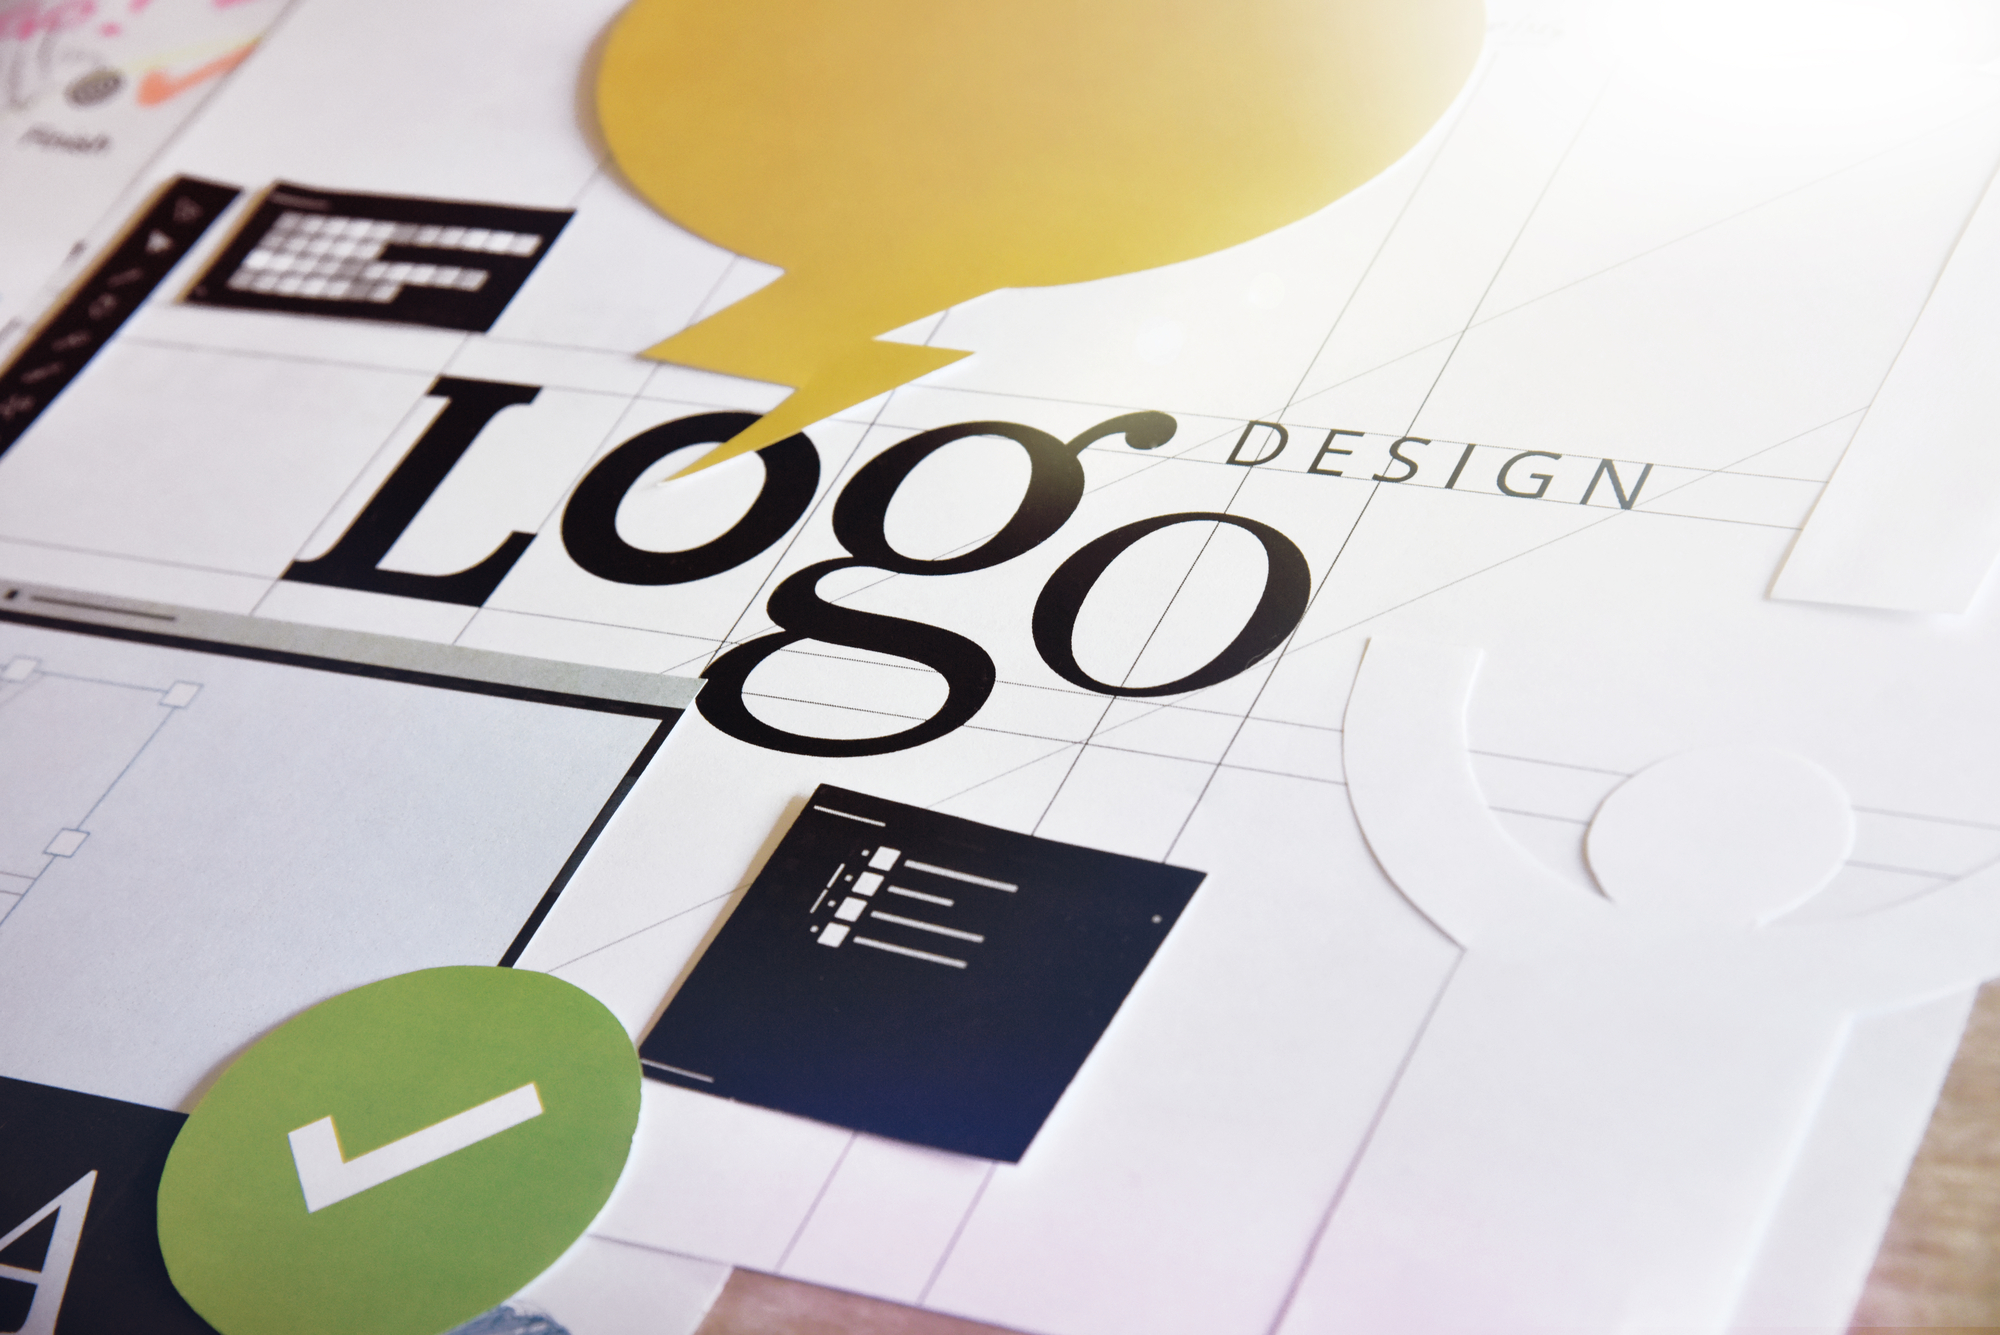 purpose of a logo